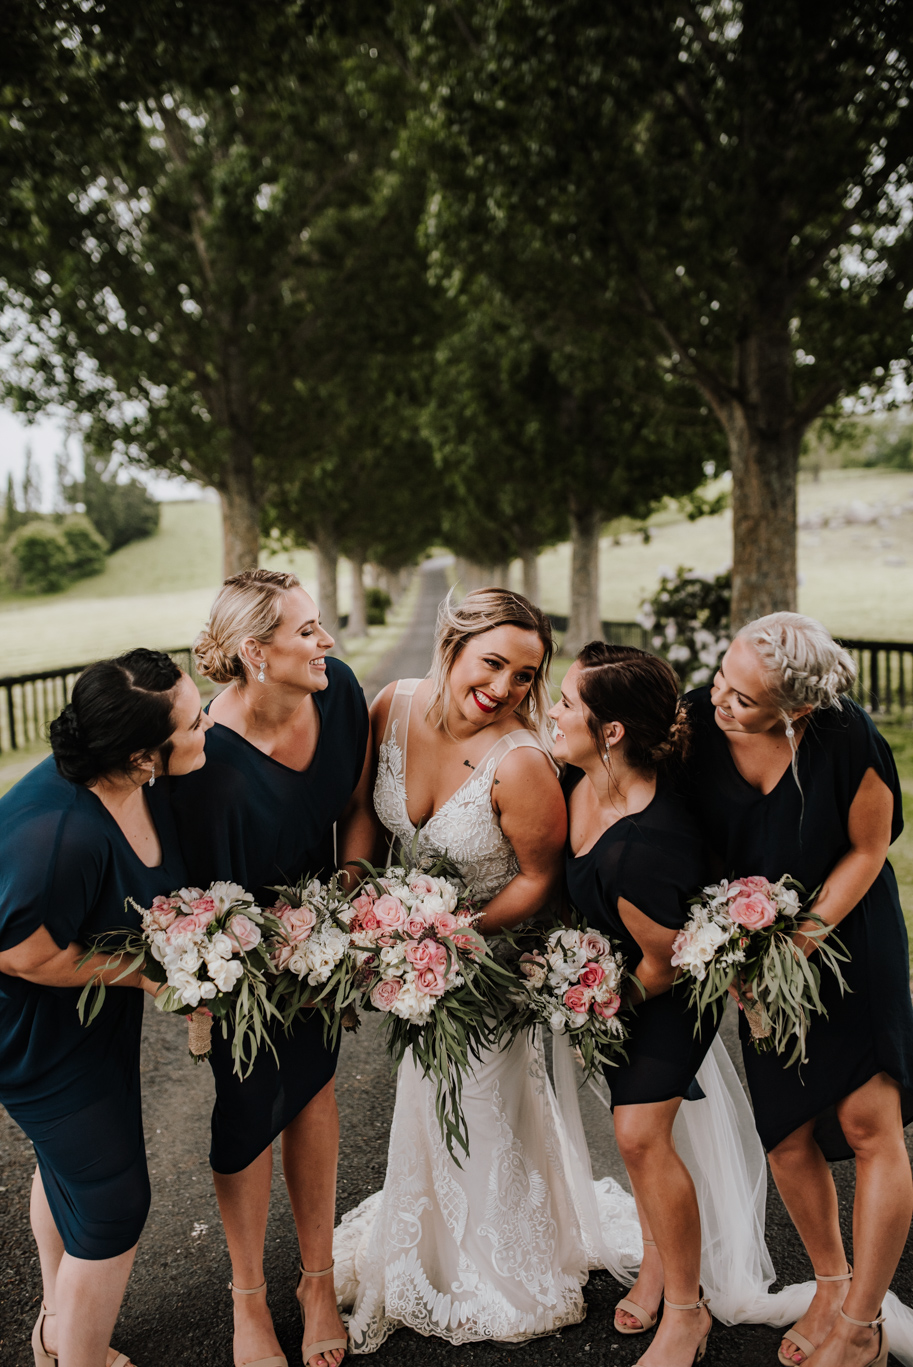 Angela+Vaughan Benedetti Wedding Dress Bride And Bridesmaids 2